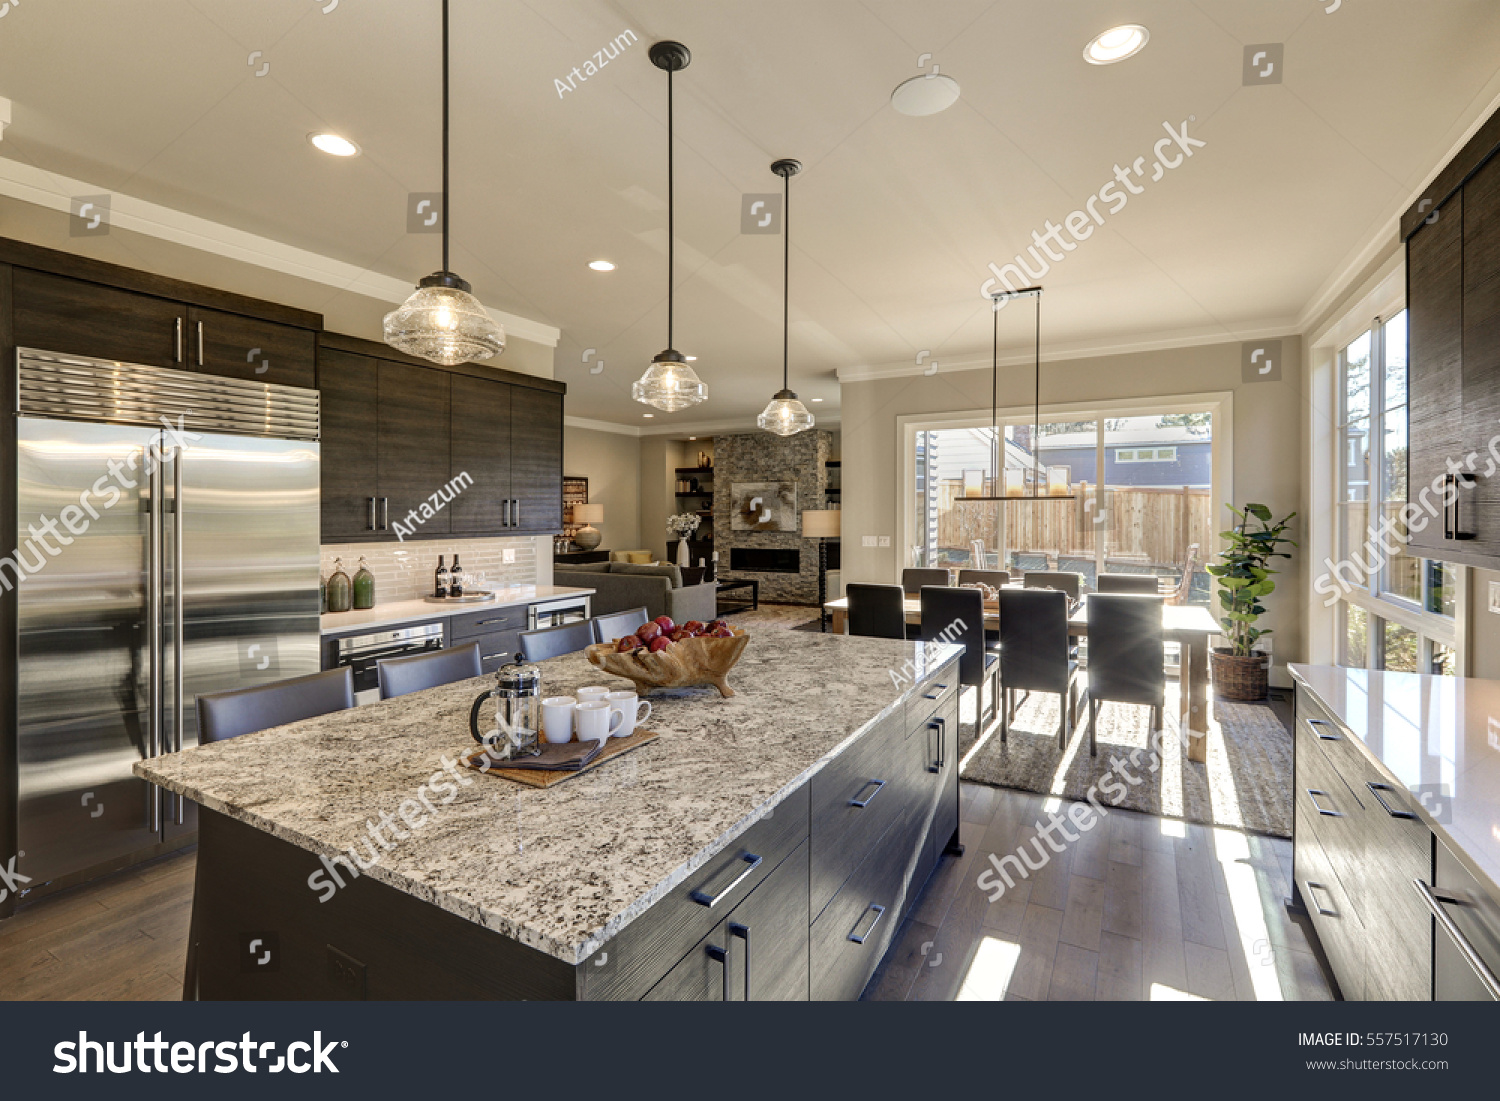 crawford gray diverting cambria the dark remarkable and silestone with grey lowes featuring countertops gallery home quartz representation cabinets white pental nett kitchen awesome bathroom